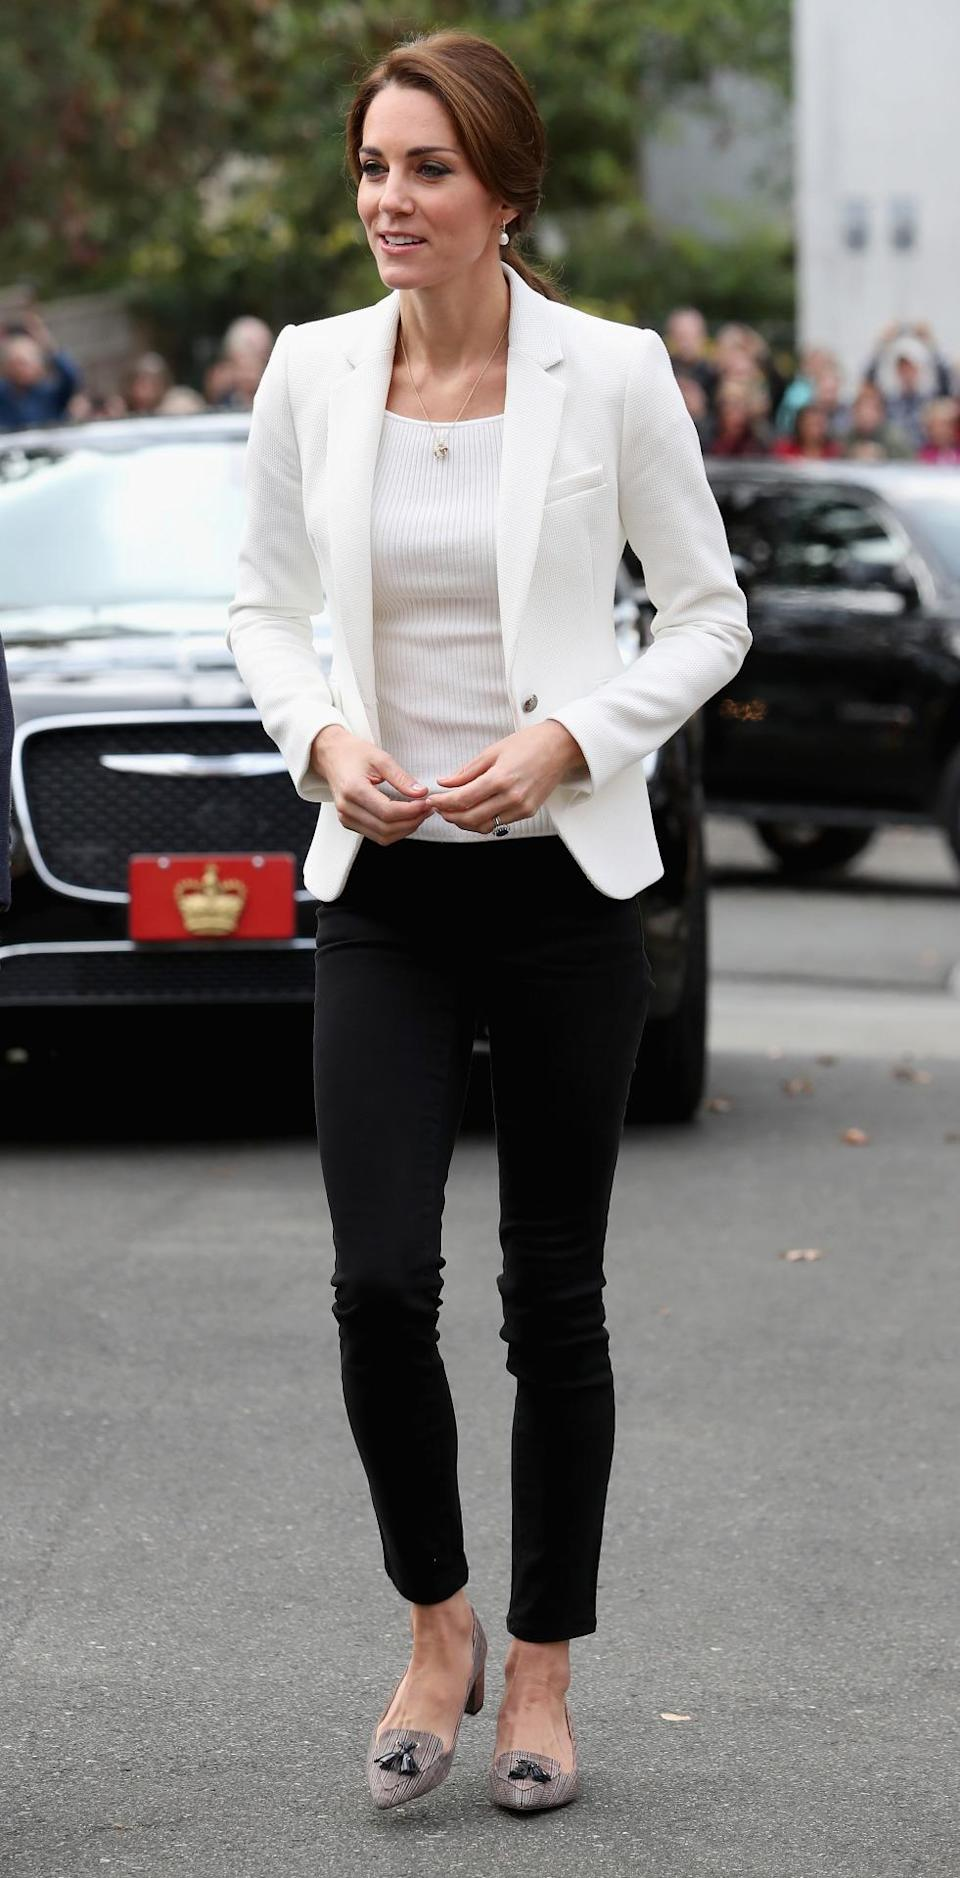 <p>Kate donned a chic white blazer from Zara with a H&M top underneath for a day of engagements in Victoria, Canada. Black Zara trousers and tweed J Crew heels (which are now completely sold out) topped off the look. </p><p><i>[Photo: PA]</i> </p>